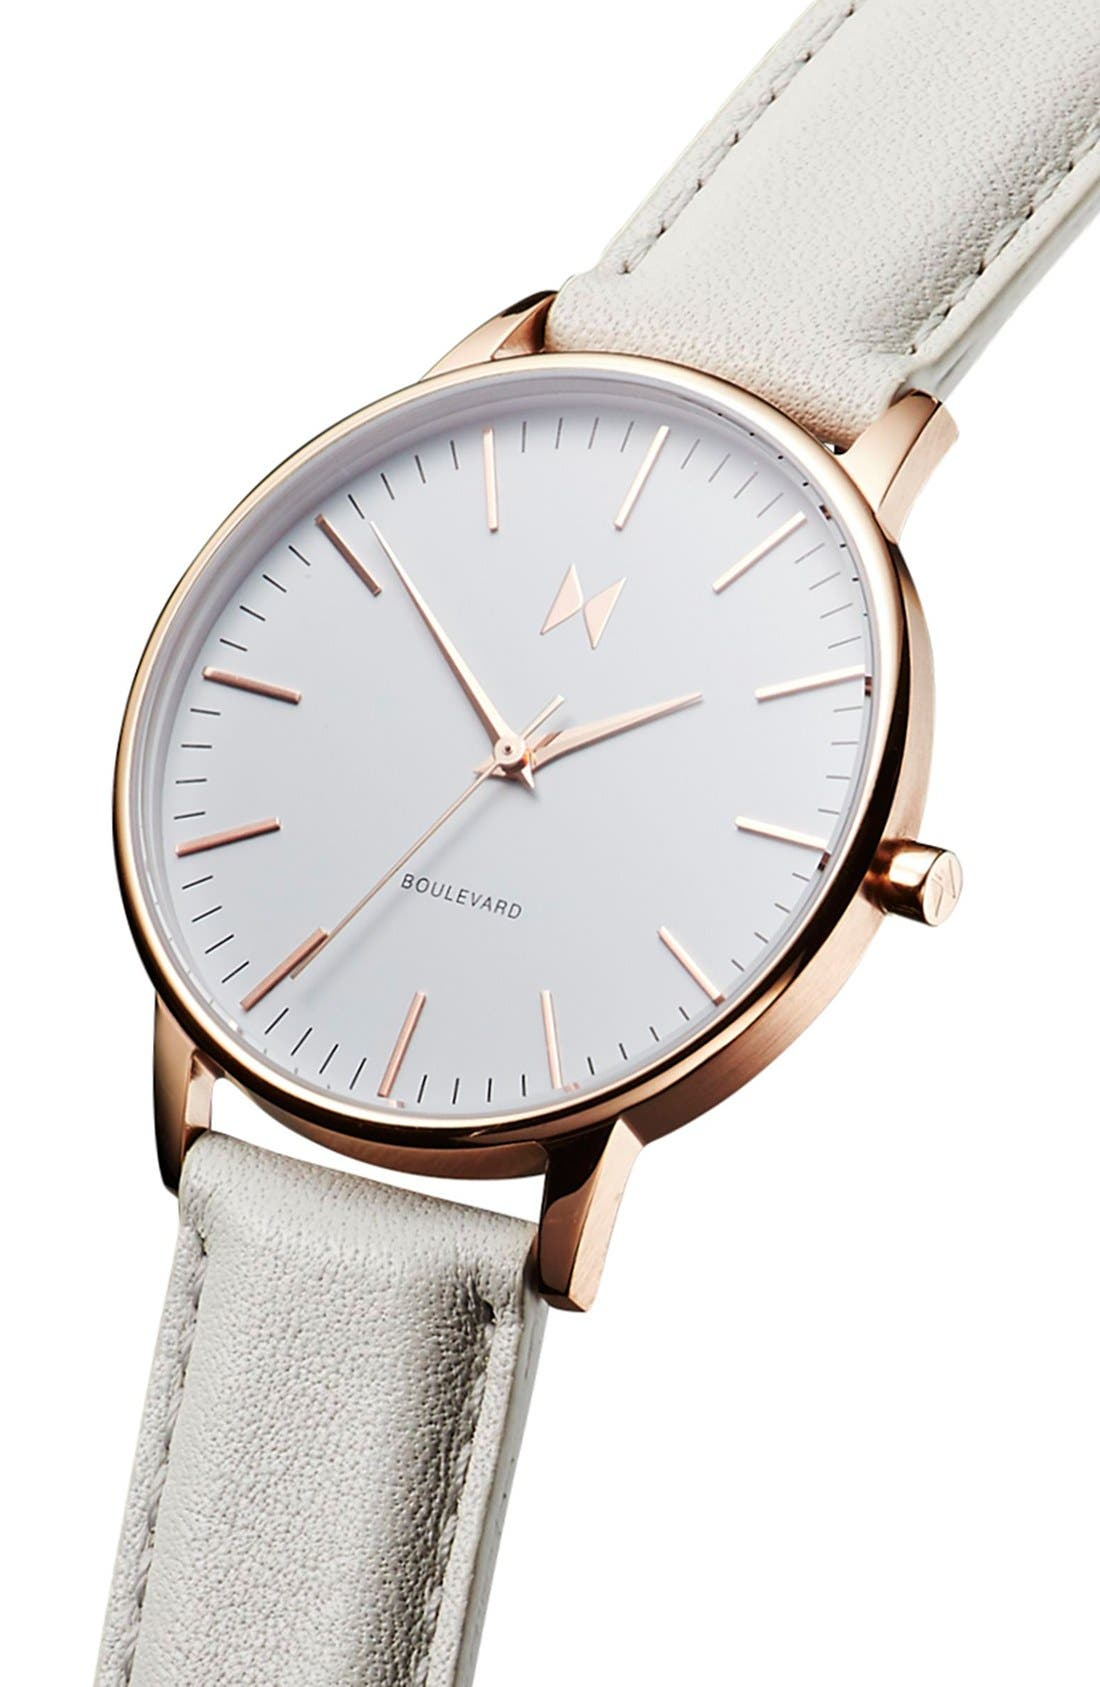 Boulevard Leather Strap Watch, 38mm,                             Alternate thumbnail 3, color,                             GREY/ WHITE/ ROSE GOLD